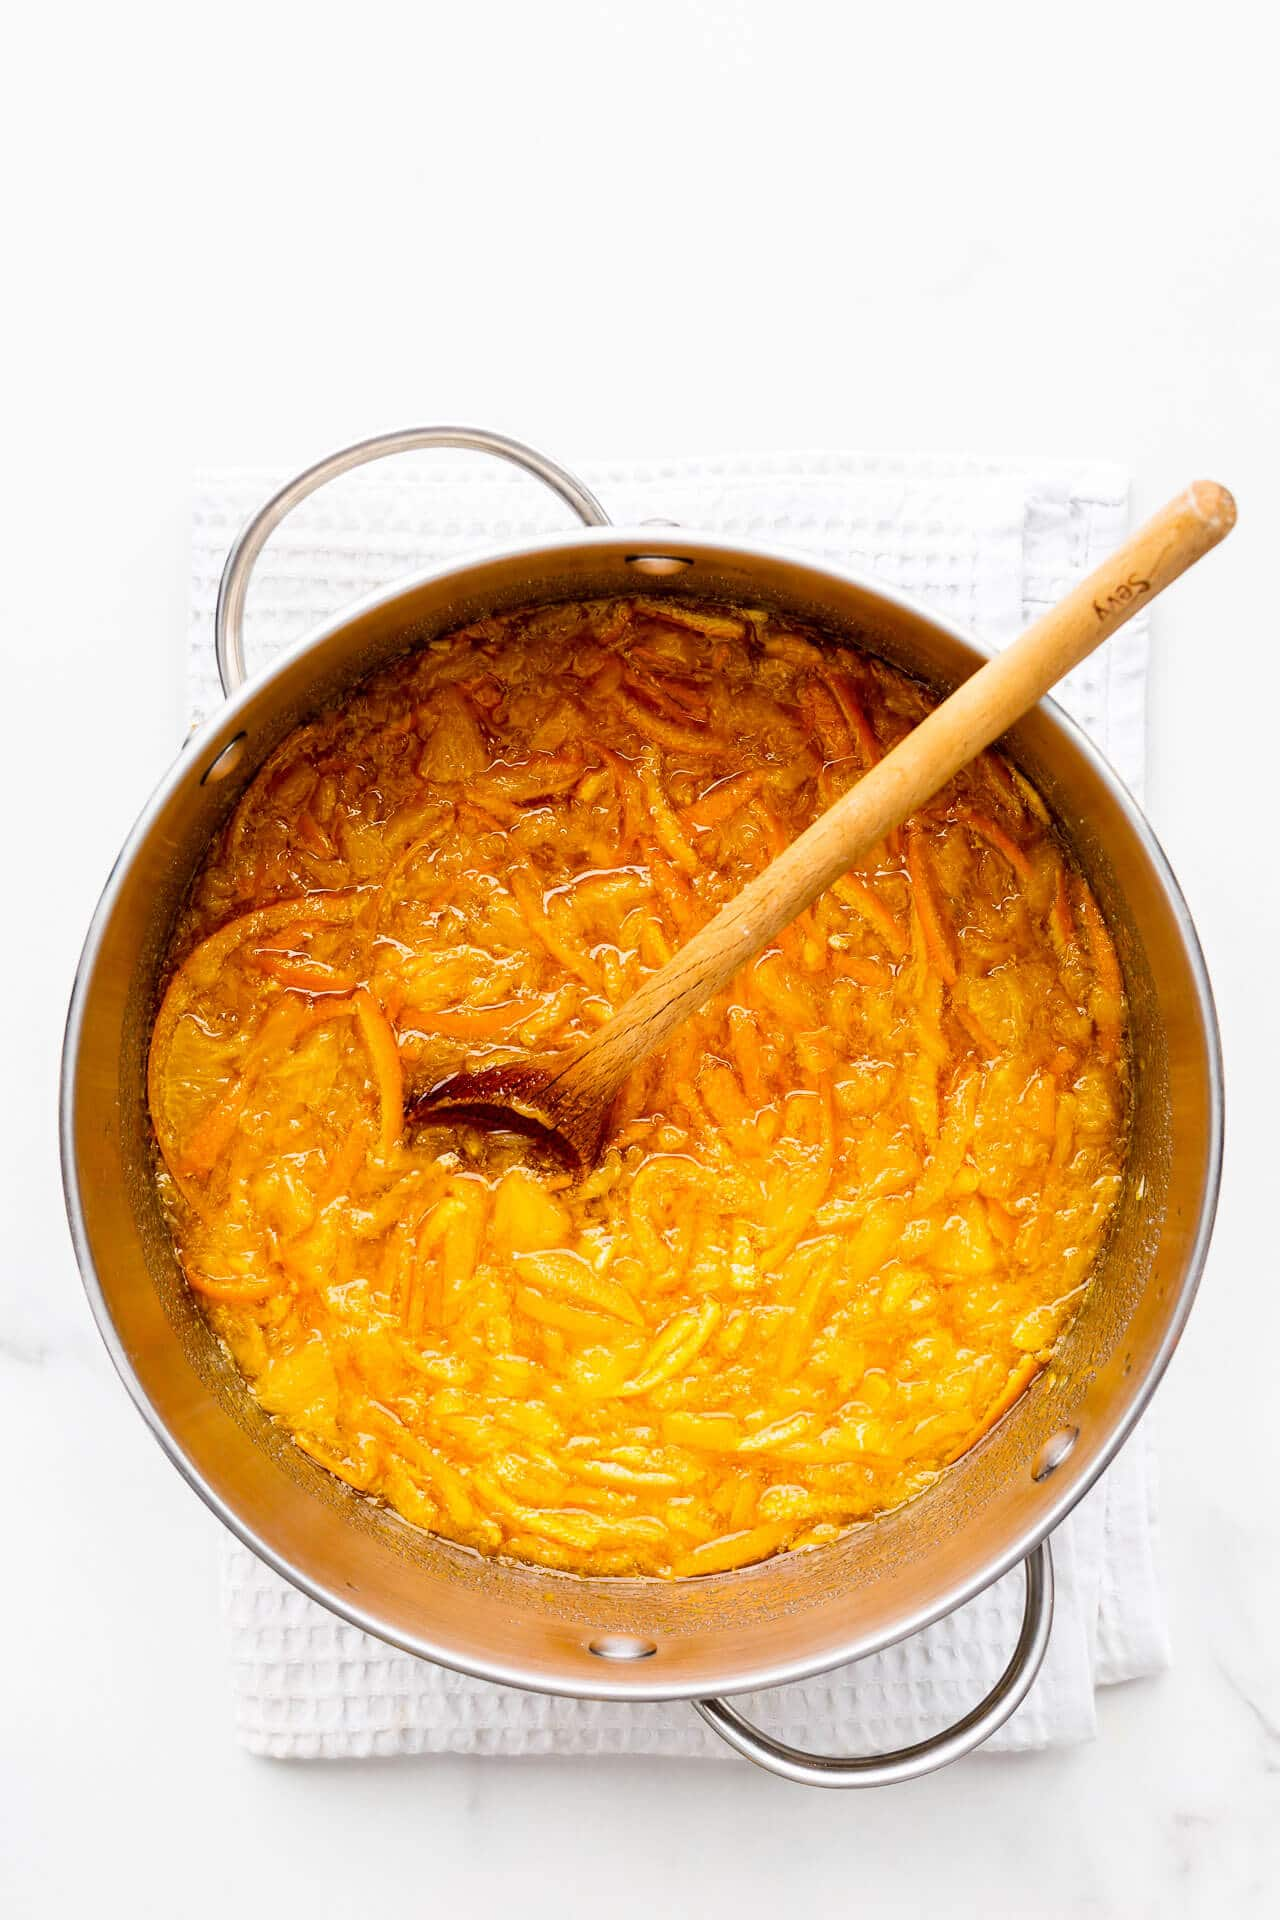 A pot of sliced oranges and sugar, ready to be boiled to make homemade orange marmalade.